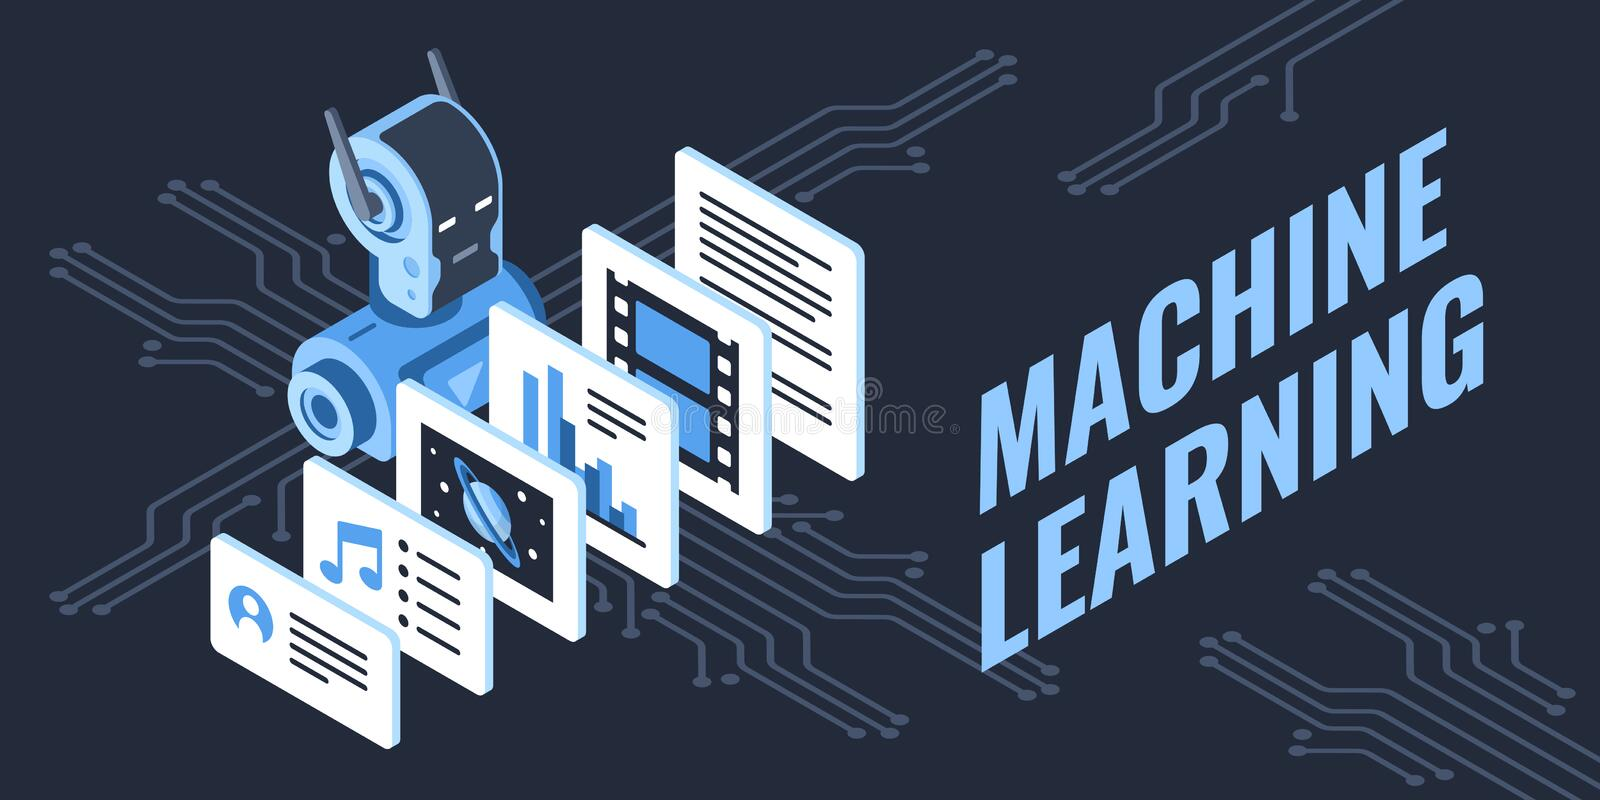 Colorful vector illustration of machine learning process royalty free illustration